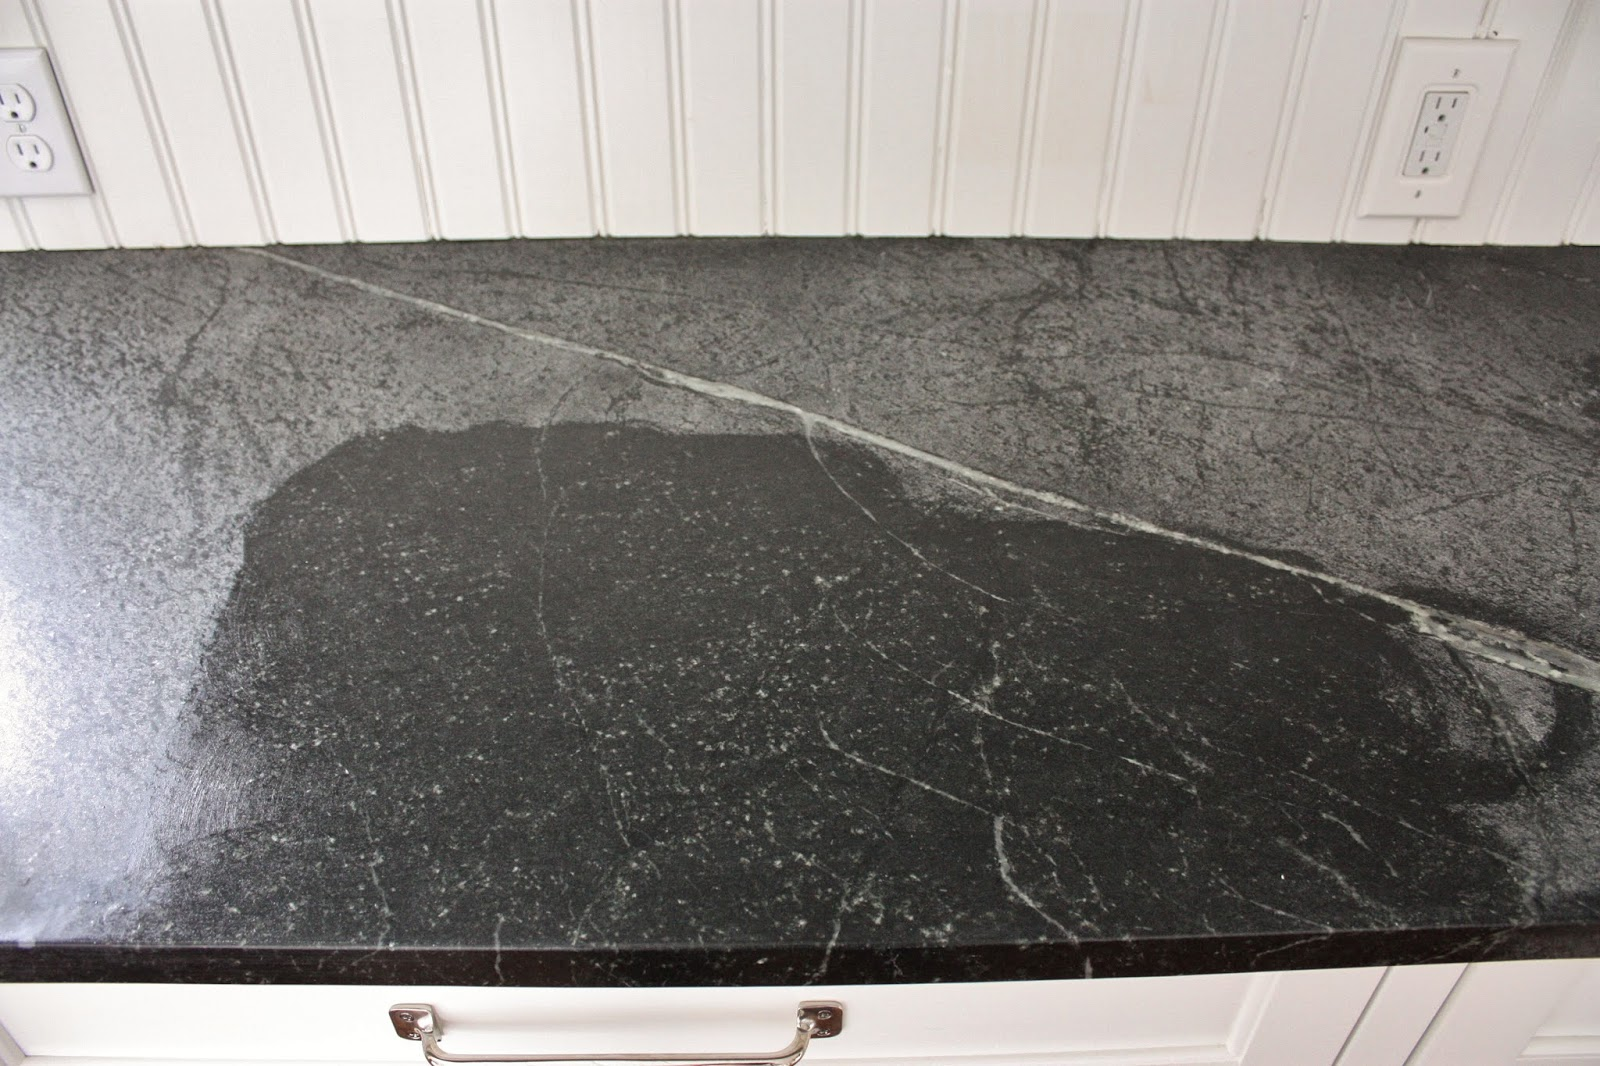 black soapstone countertop being rubbed with mineral oil